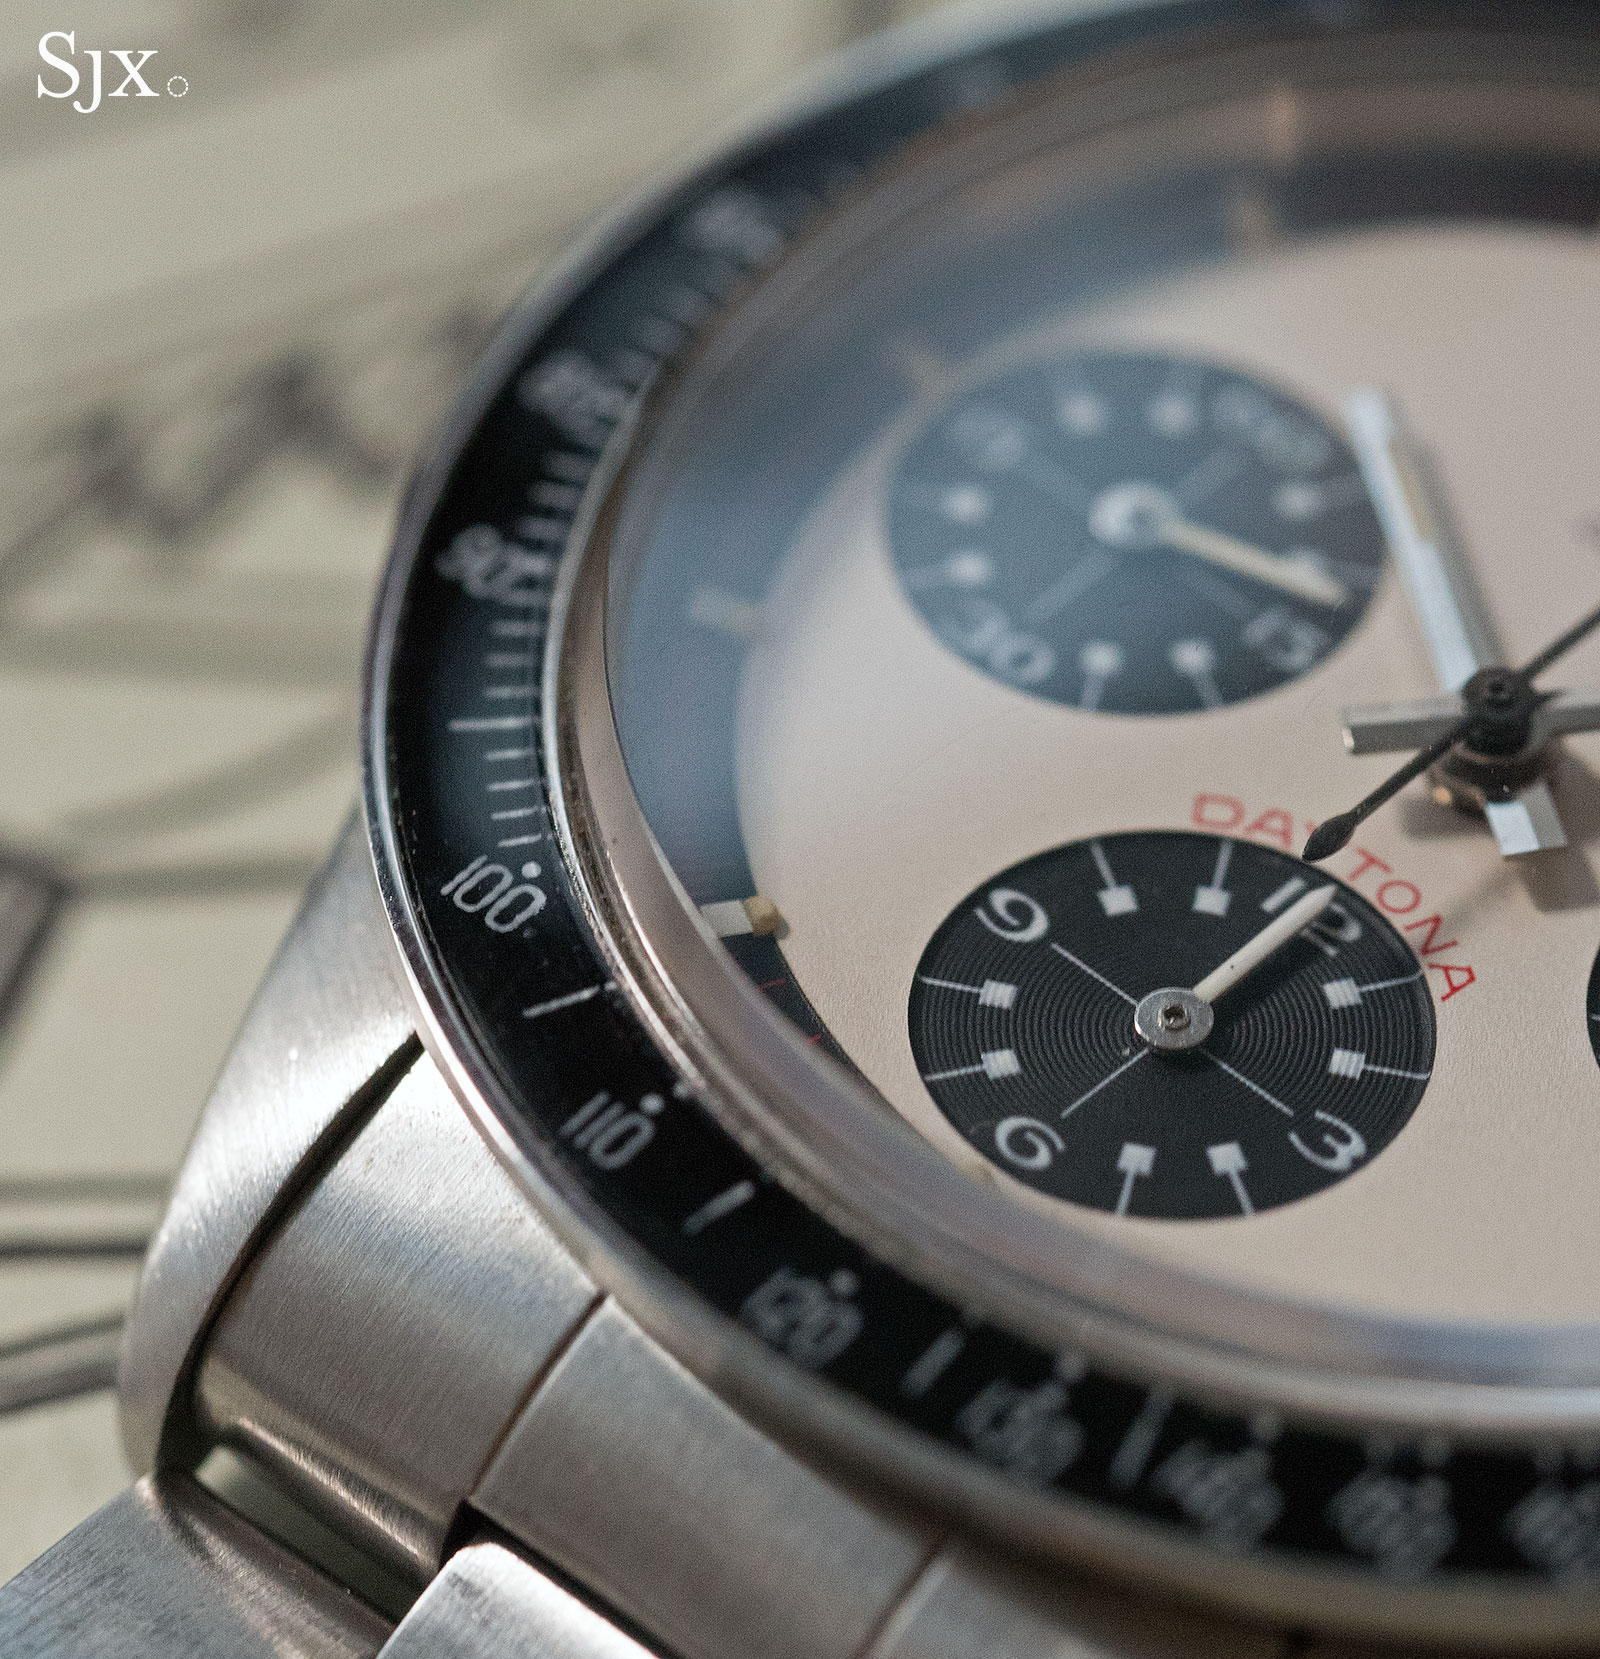 Phillips HKWA3 Rolex Daytona Paul Newman 6241 - 3